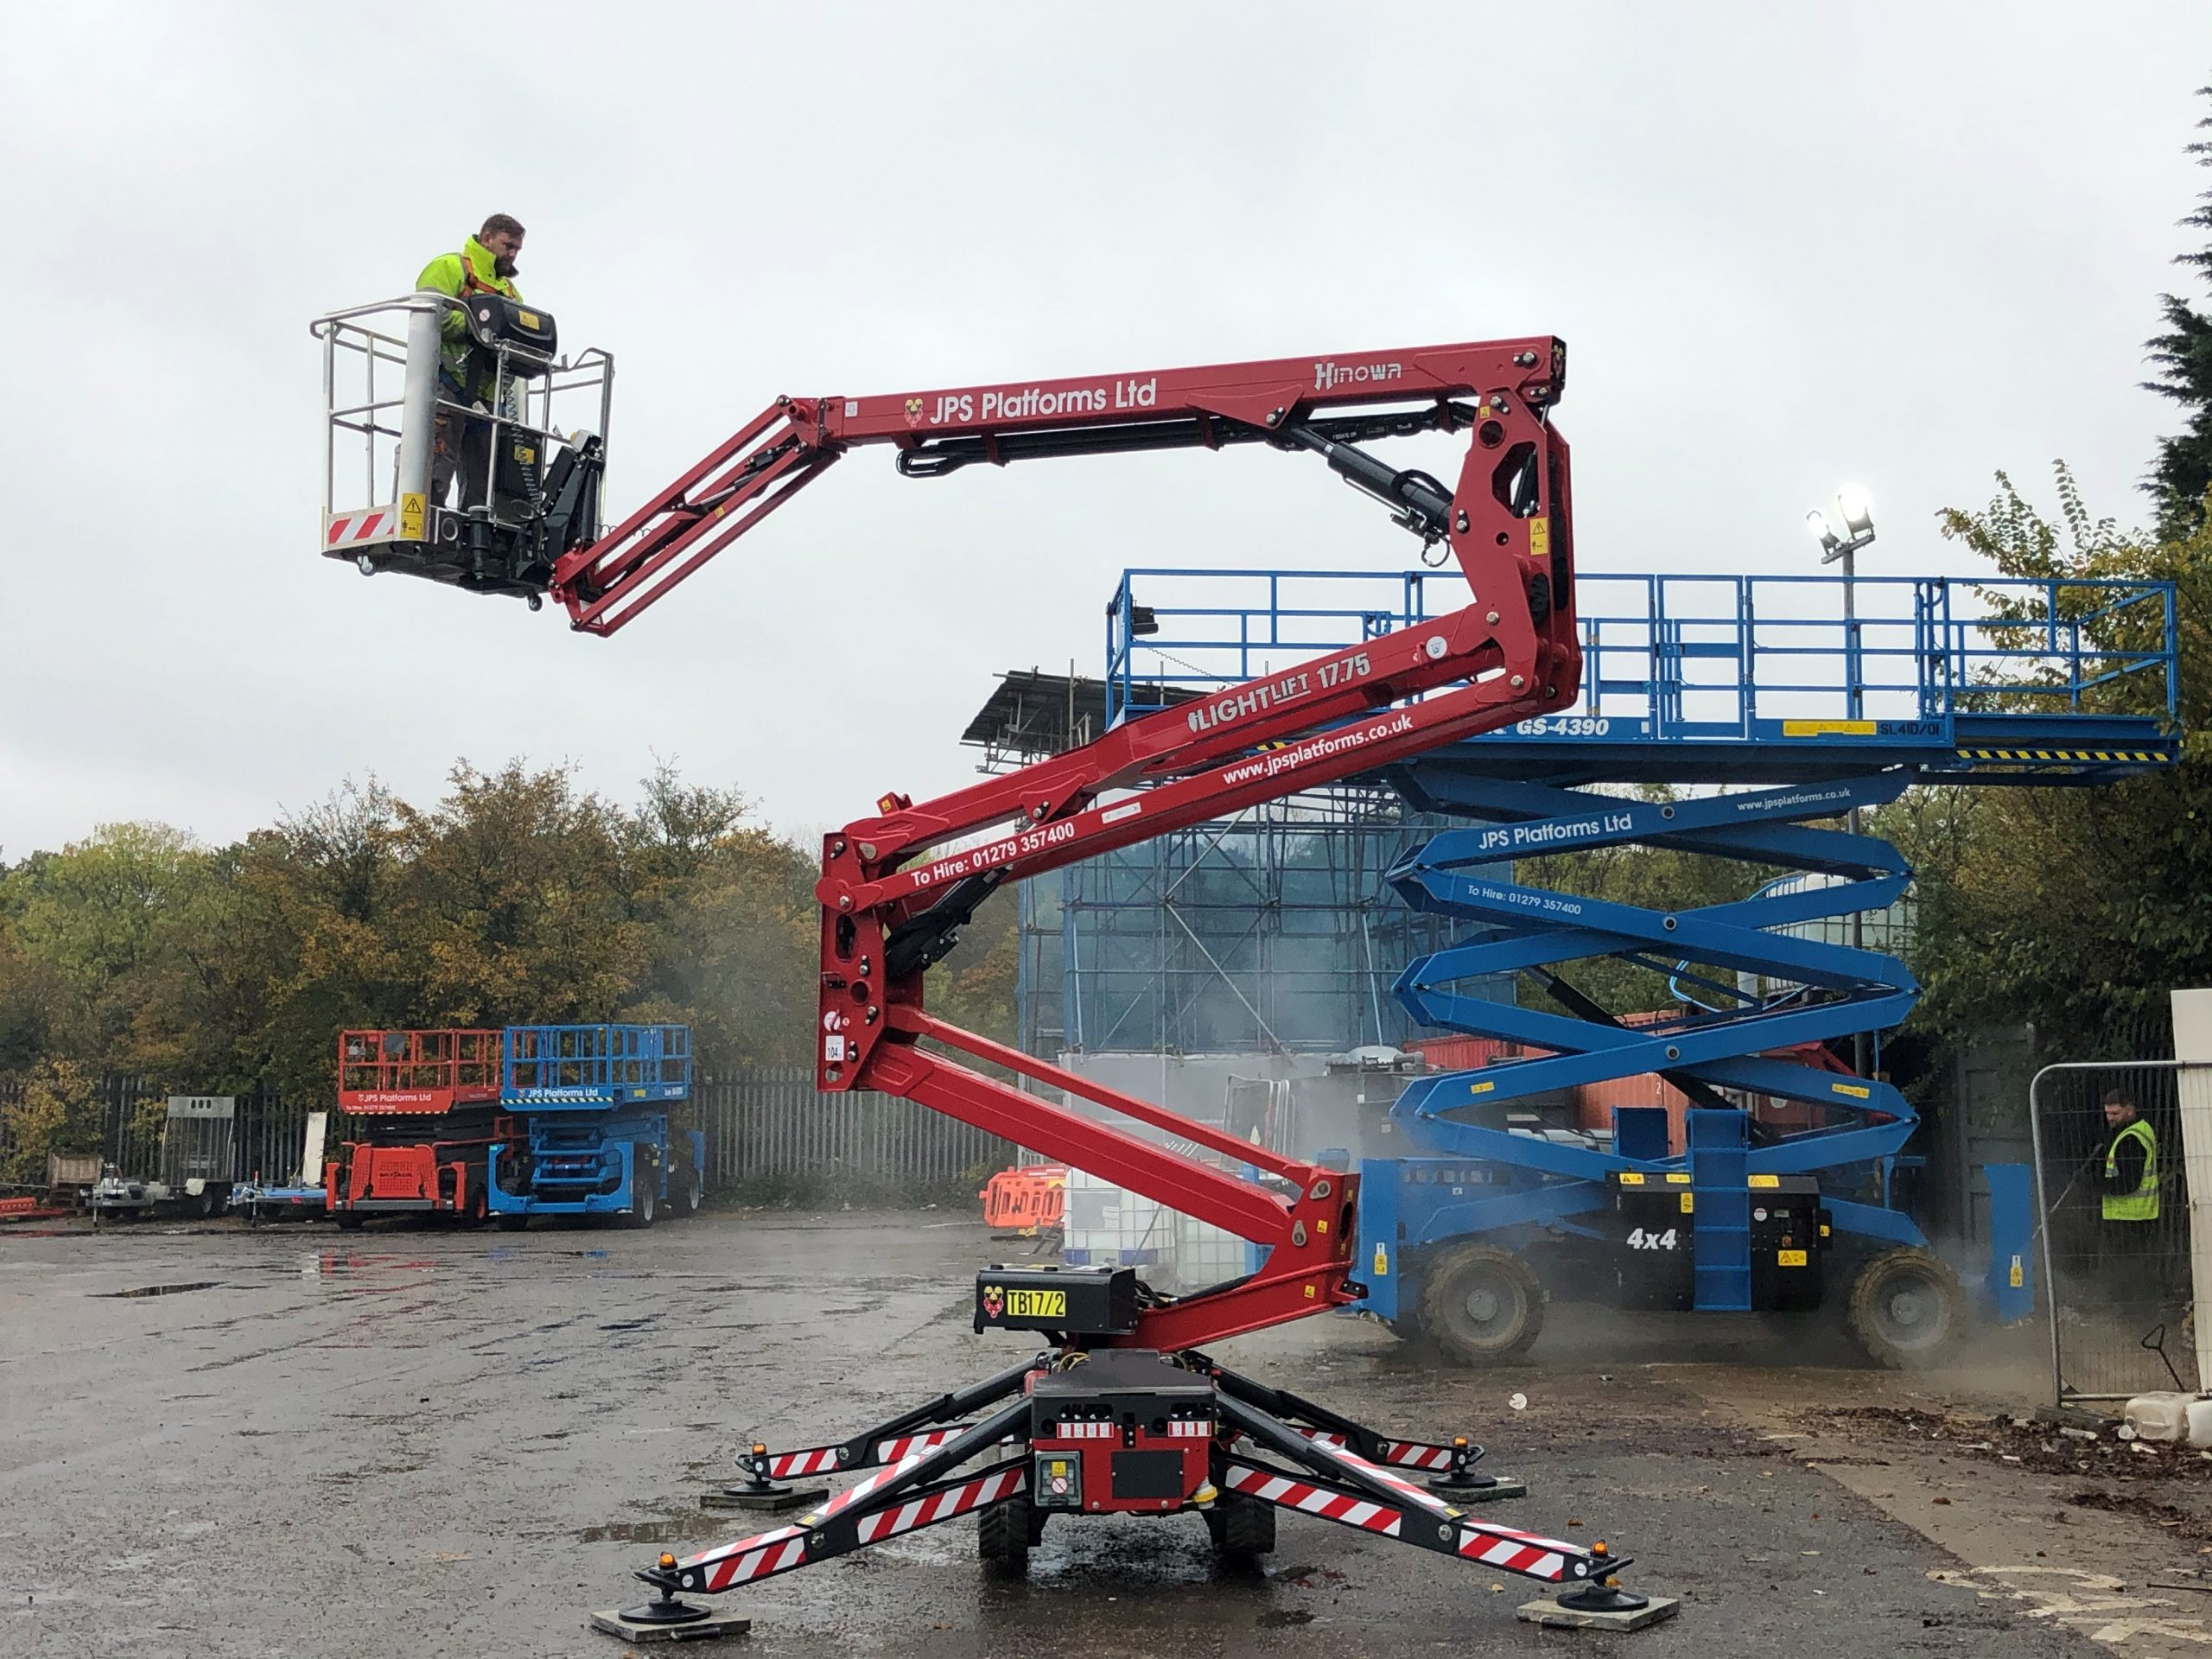 3 New Hinowa Spider Lifts Added to JPS Platforms Fleet